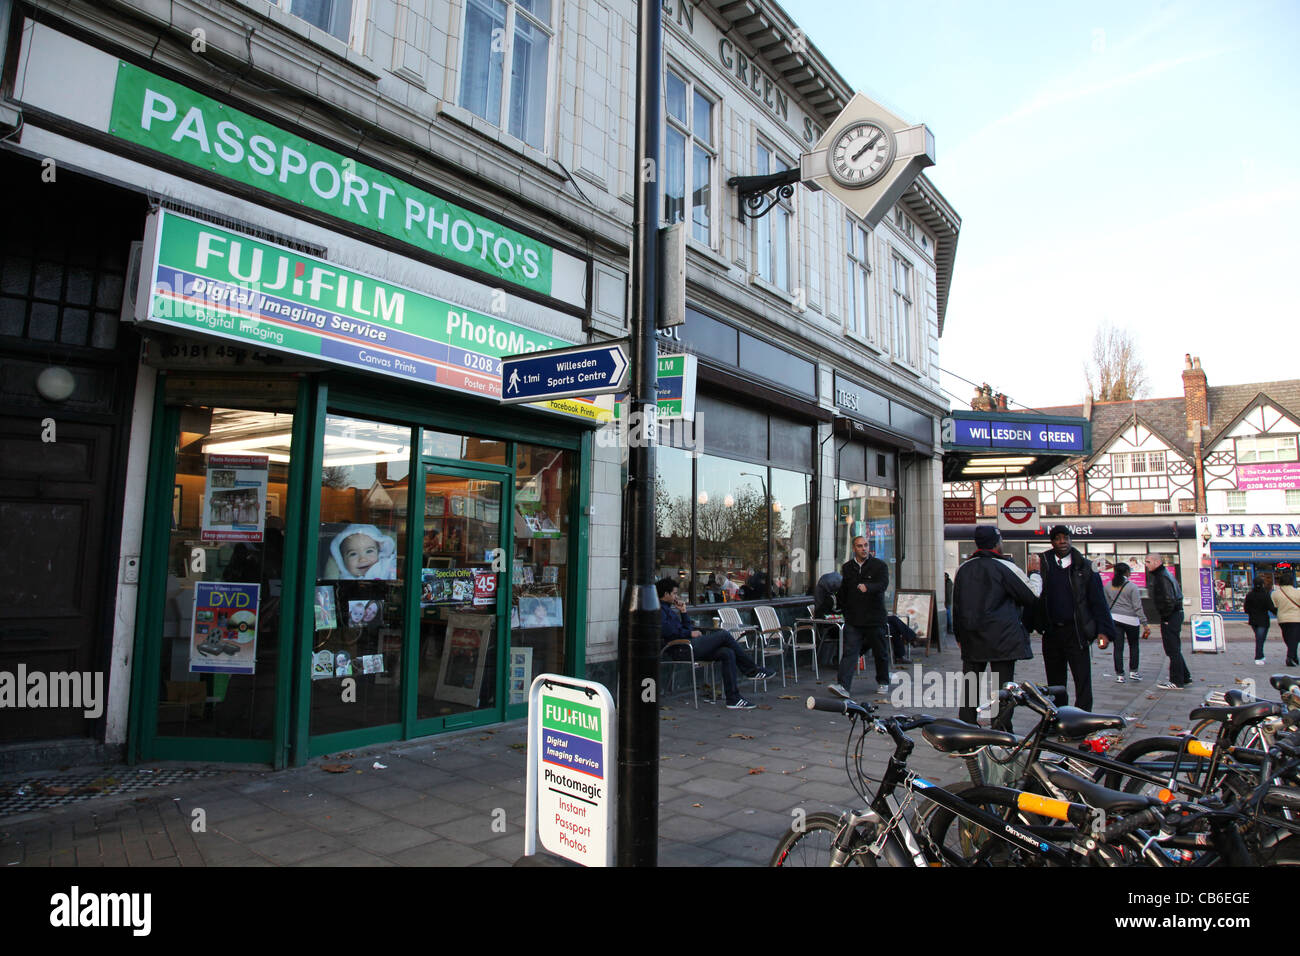 Willesden Green parade of shops by the Underground Station - Stock Image